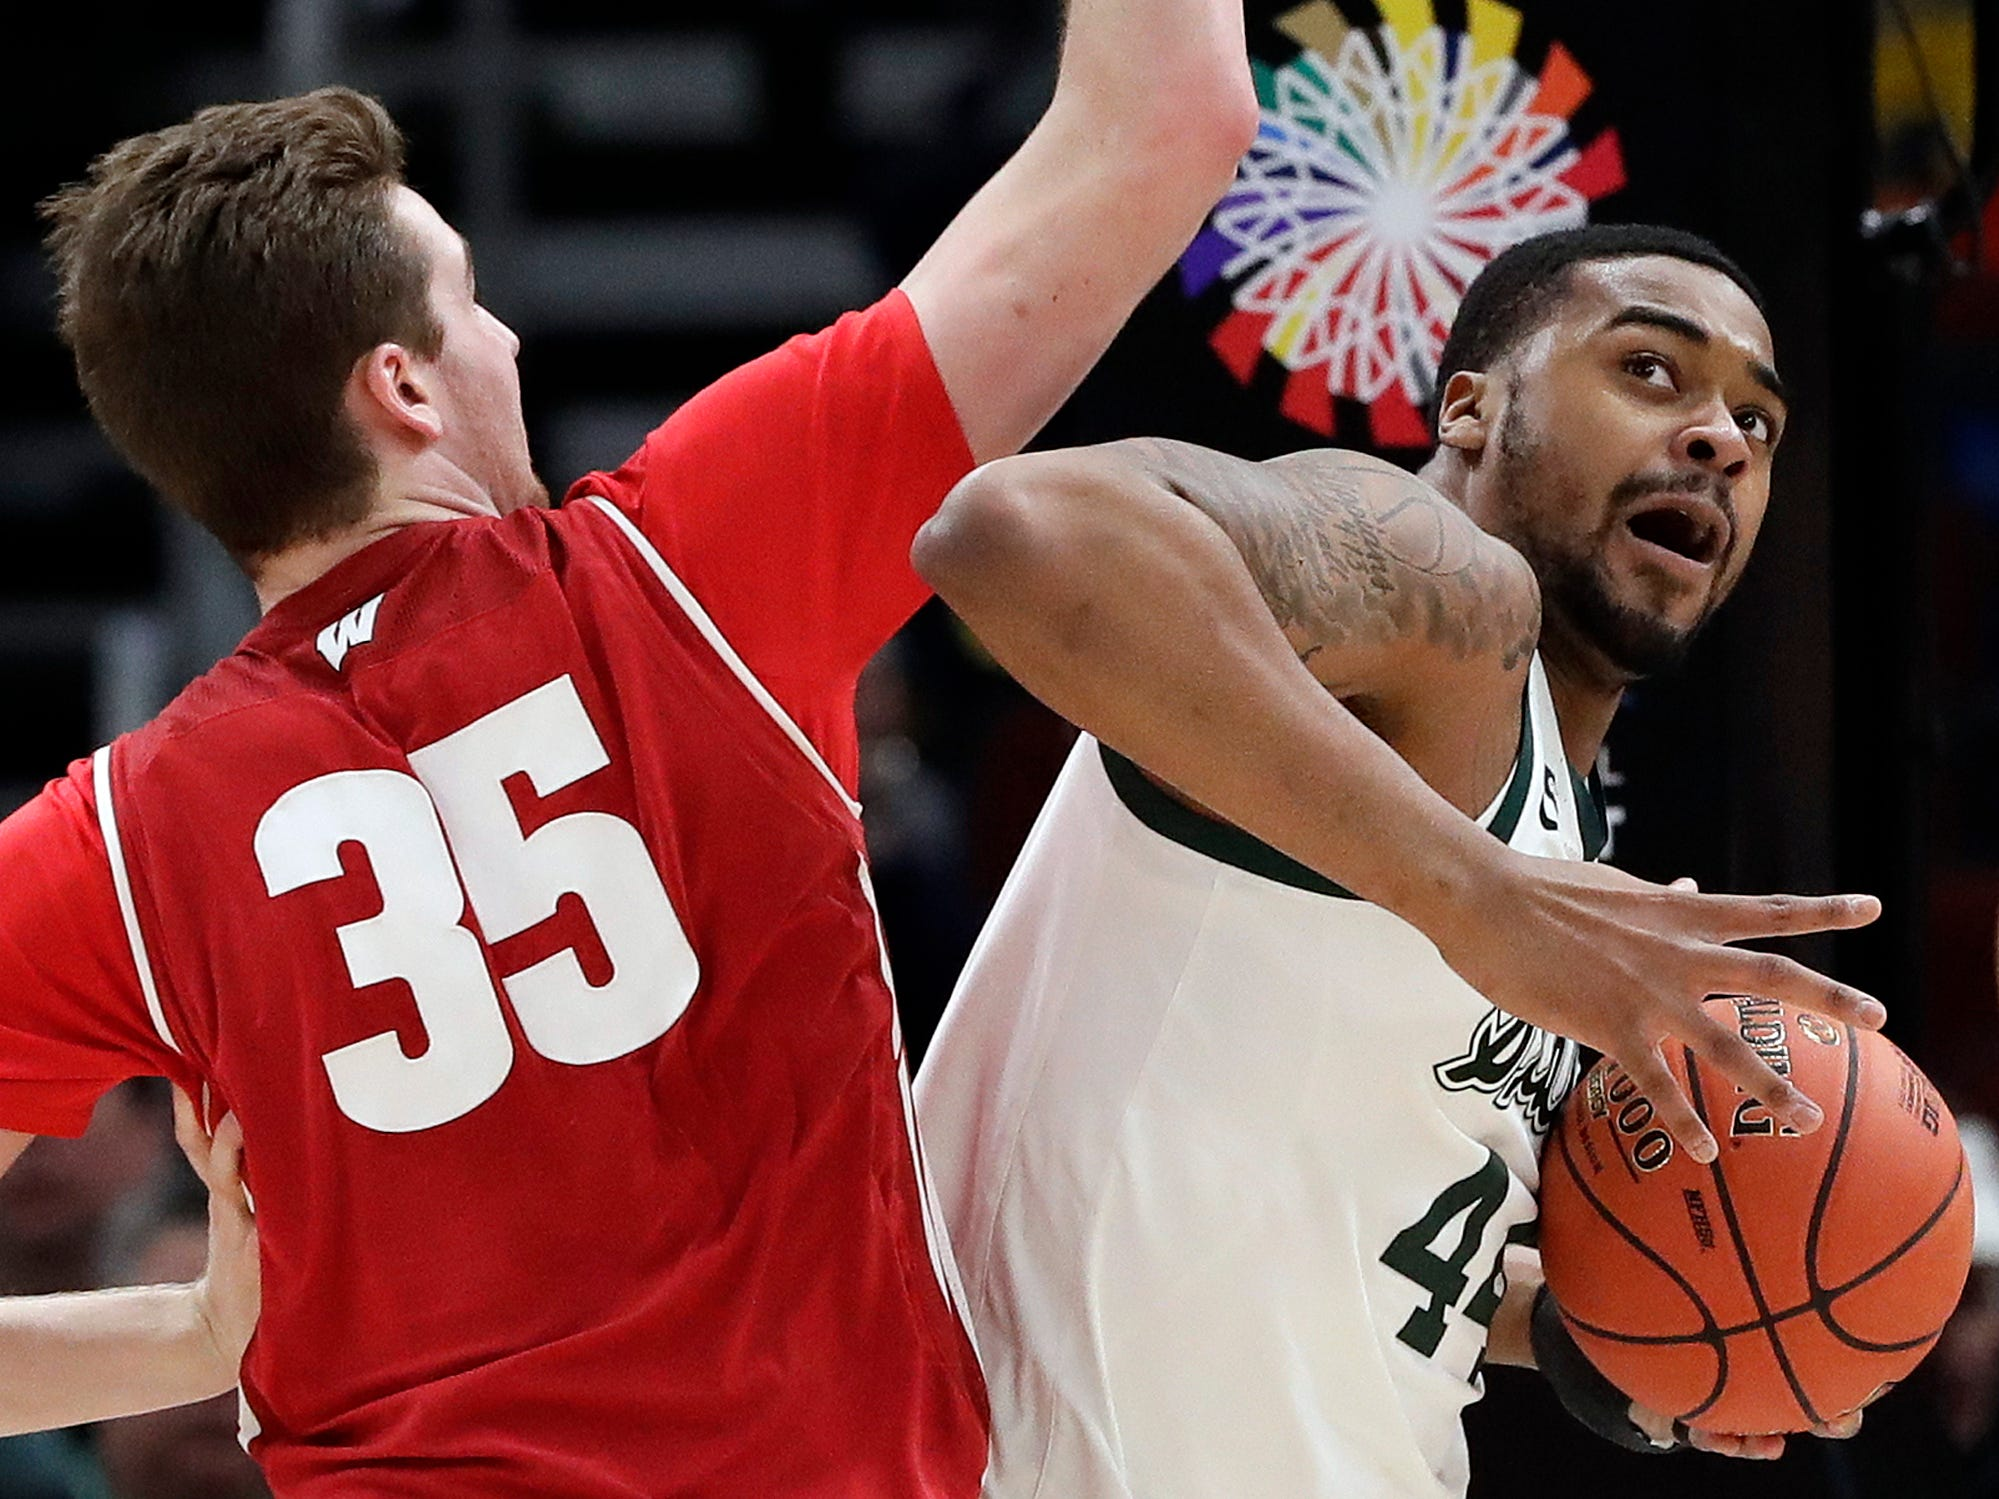 Michigan State's Nick Ward drives against Wisconsin's Nate Reuvers during the first half.